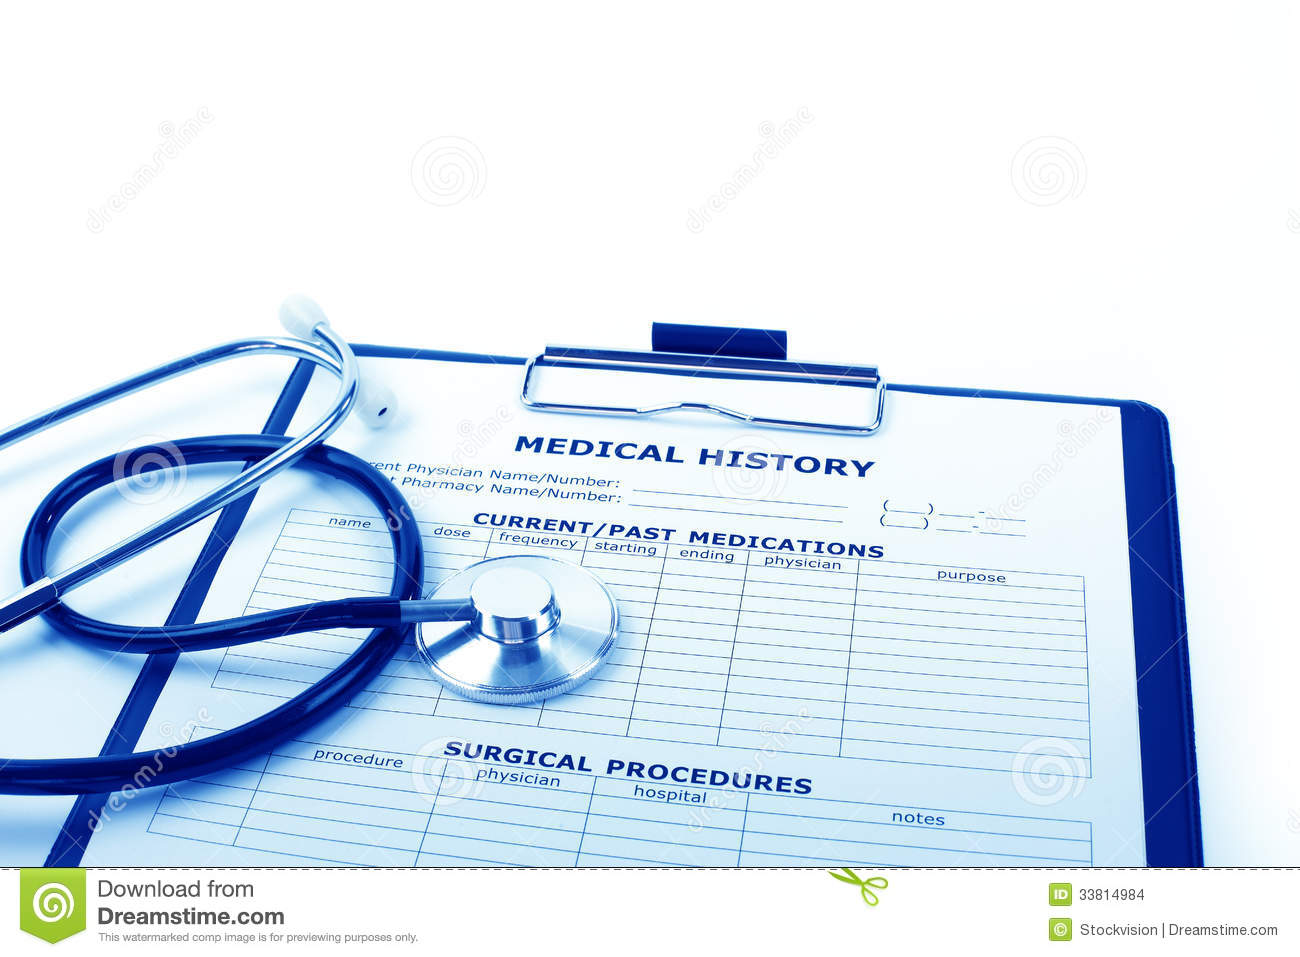 medical-concept-stethoscope-medical-history-form-clipboard-33814984.jpg